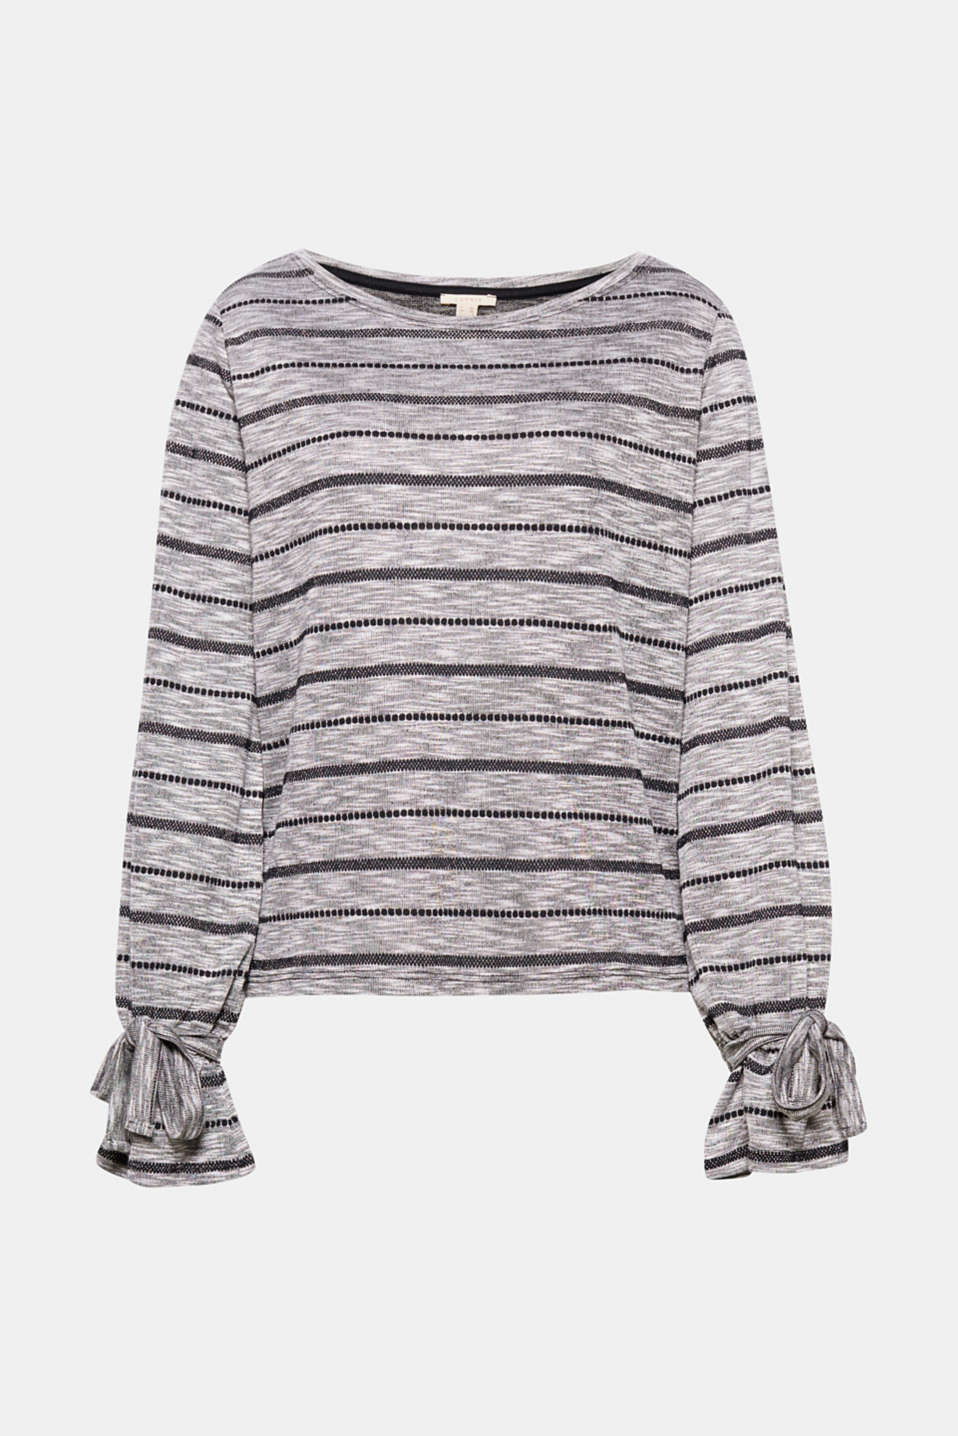 So much fashion in just one piece: this long sleeve top has a melange finish, stripes and pretty sleeves!